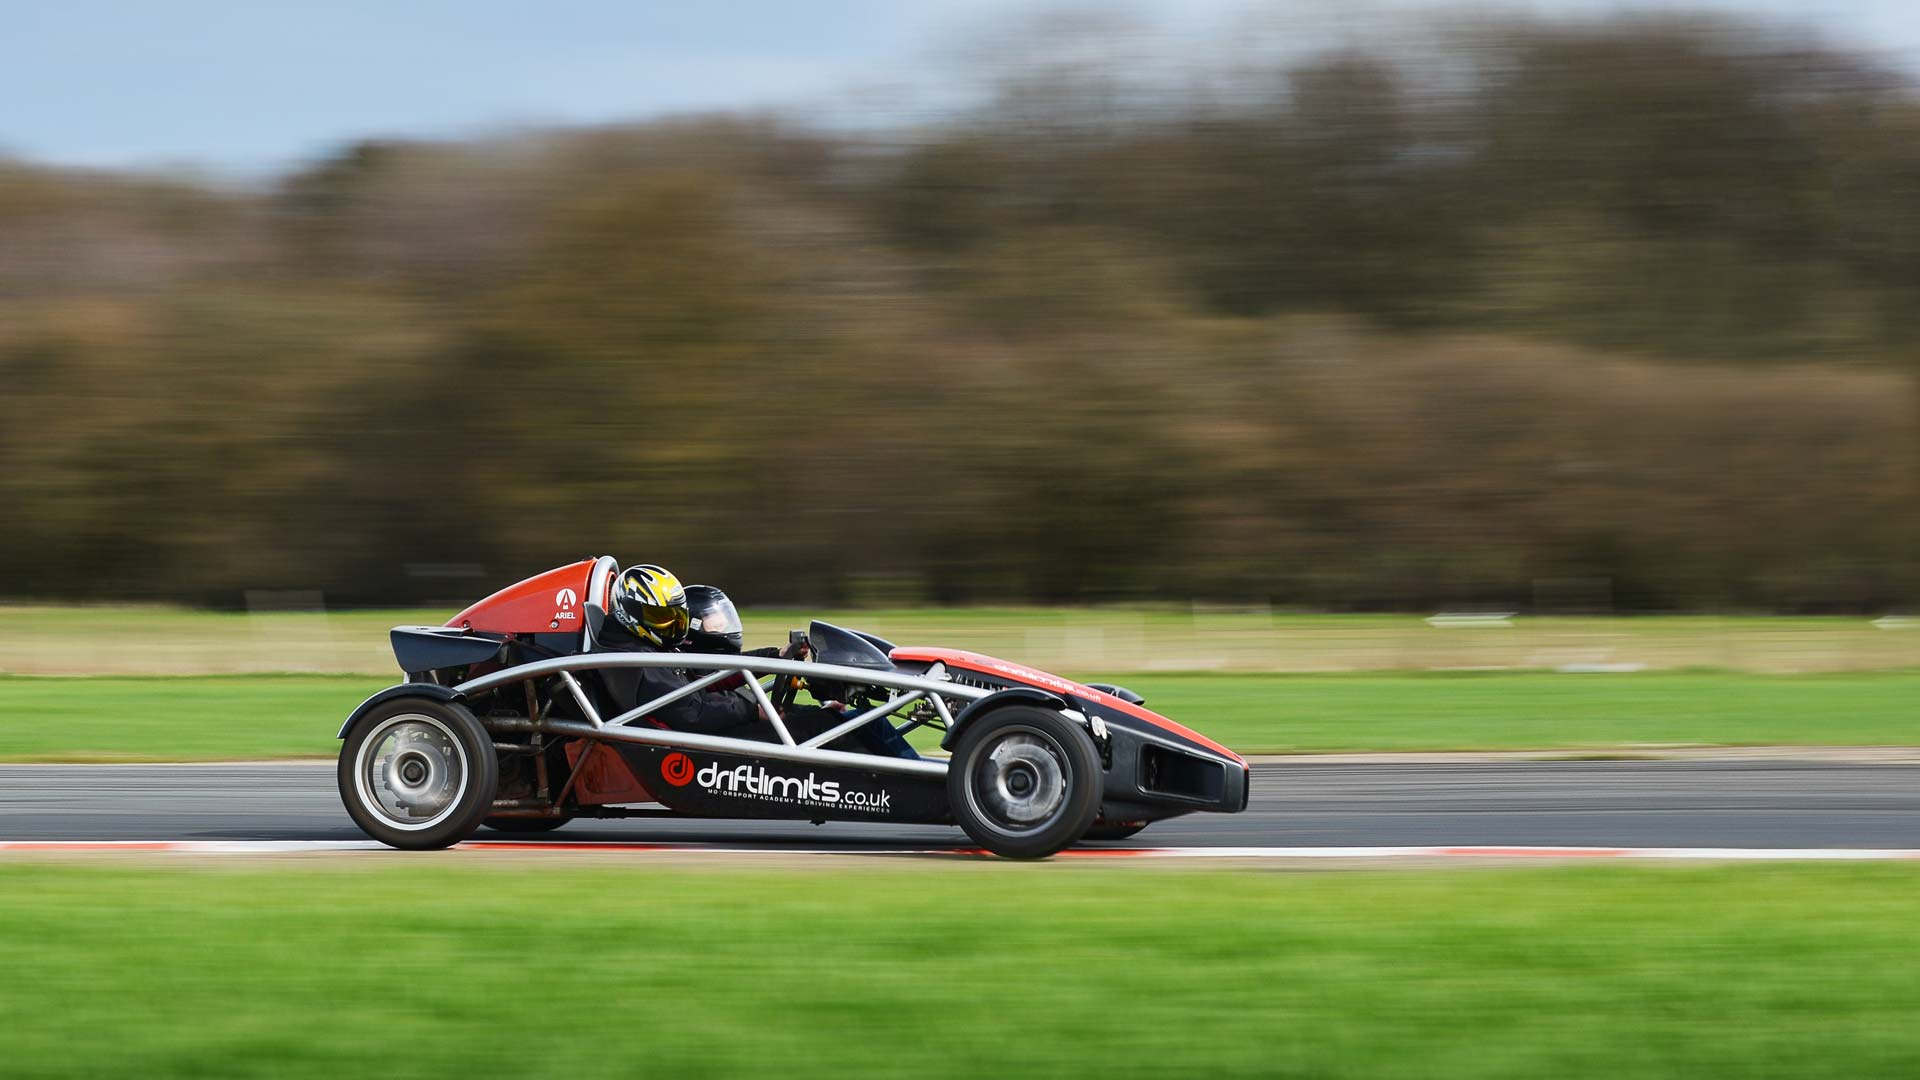 Drift Limits Ariel Atom 300